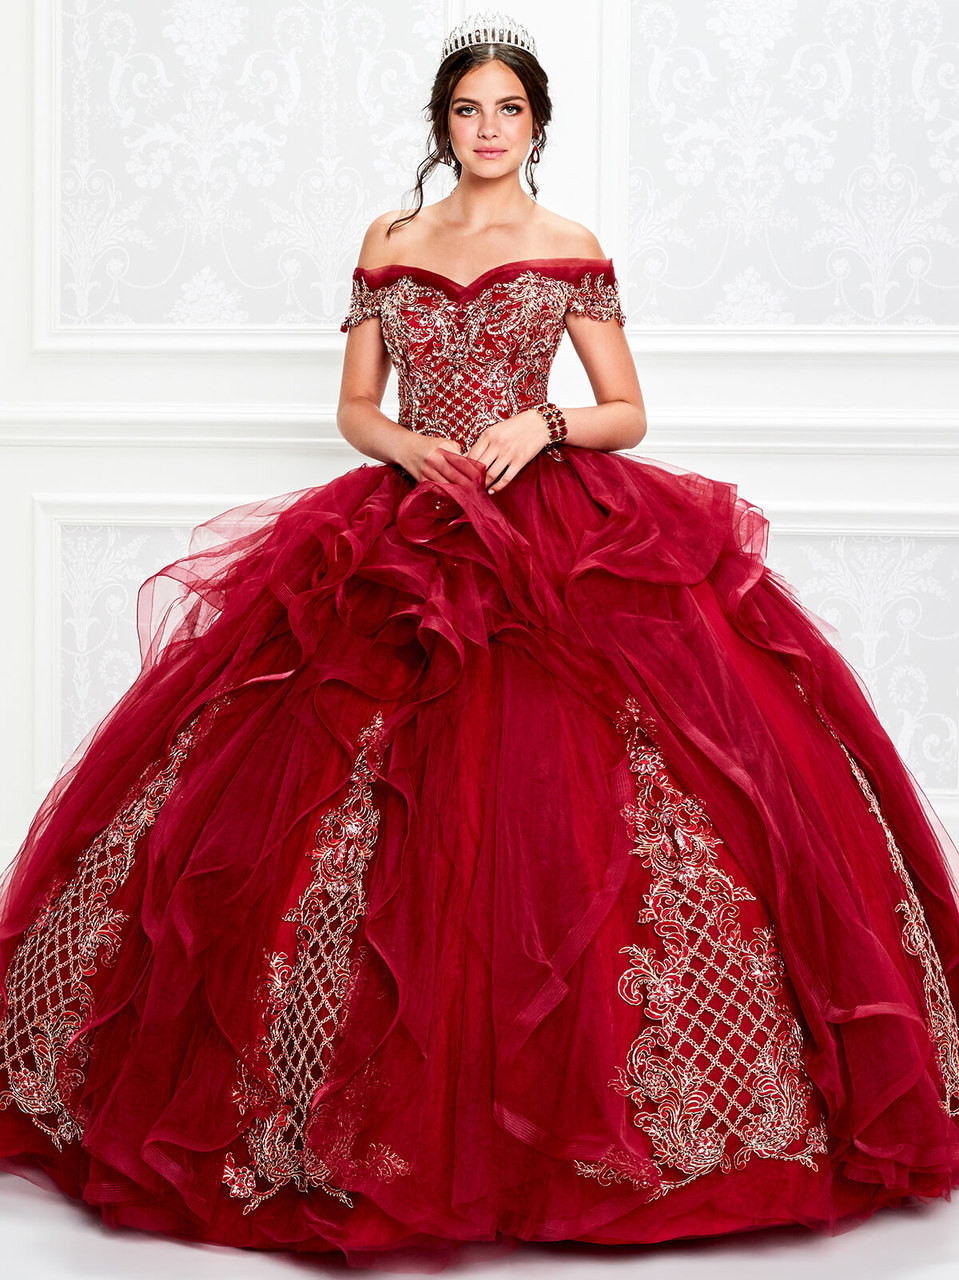 4050459f5 Princesa Quinceanera. $998.00. brocade off the shoulder ball princesa by ariana  vara pr11934